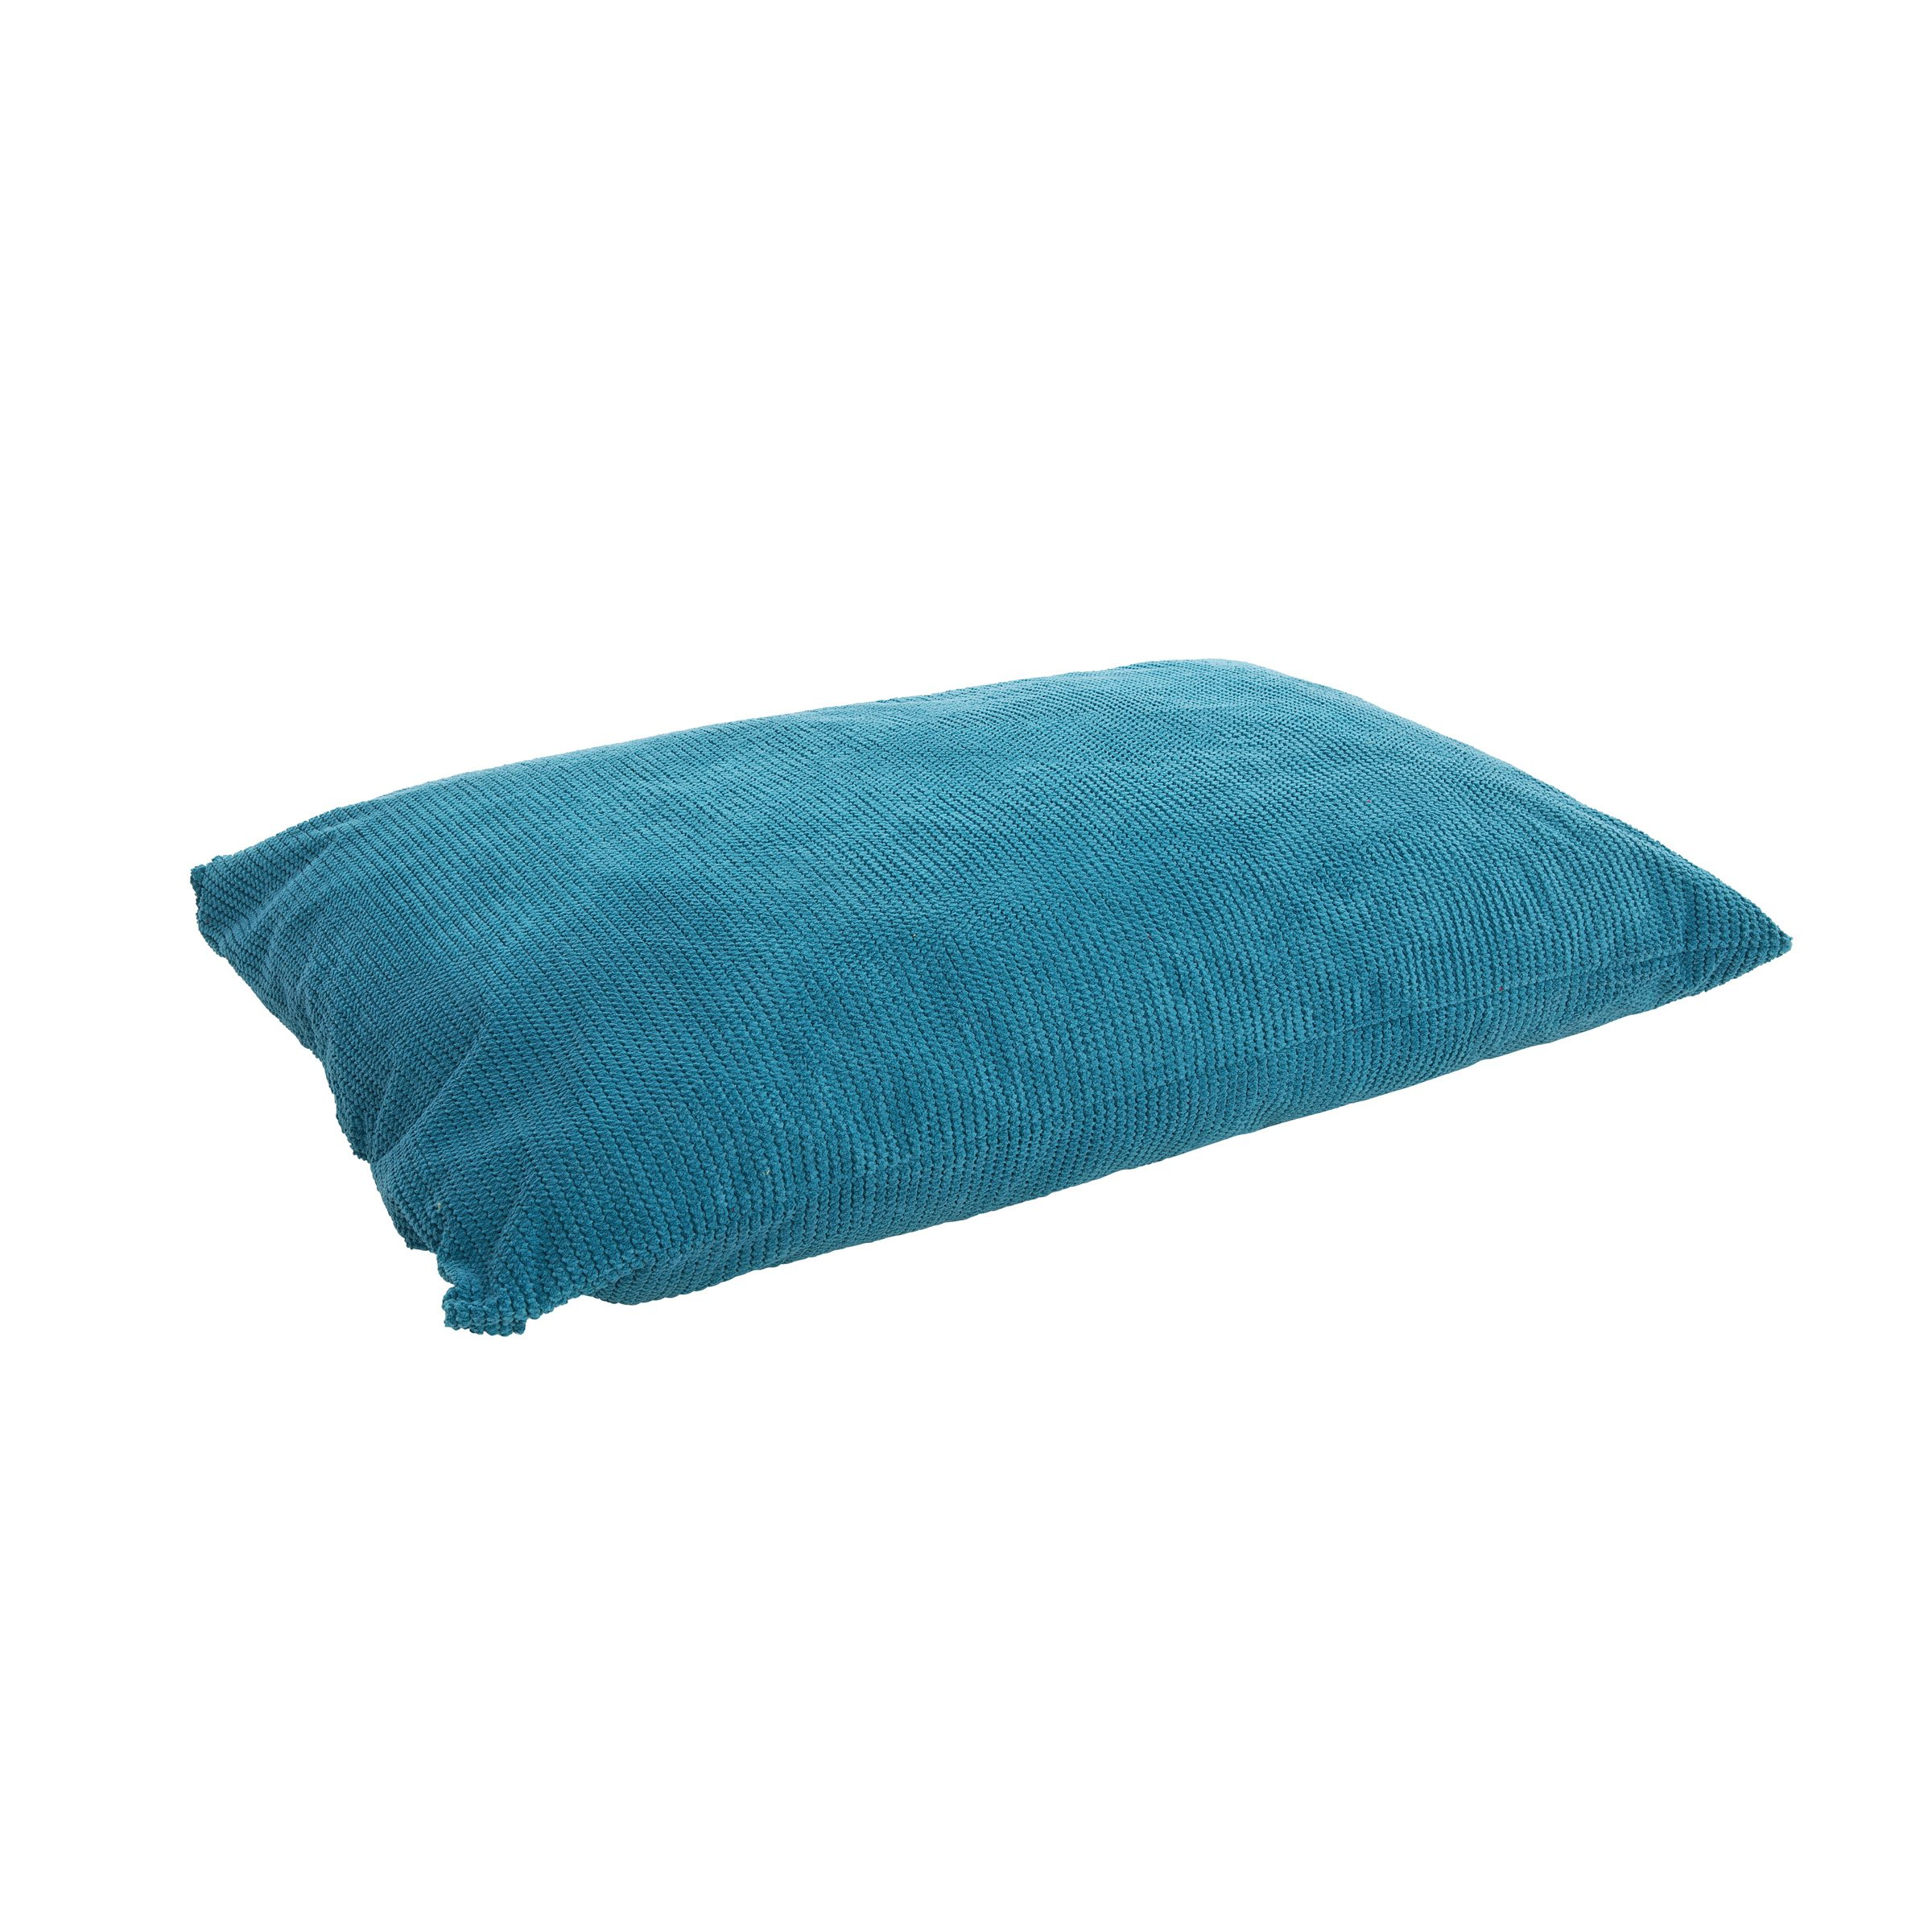 Best Big Floor Pillows : Giant Floor Cushions. Giant Floor Cushions With Giant Floor Cushions. Top Giant Floor Cushions ...